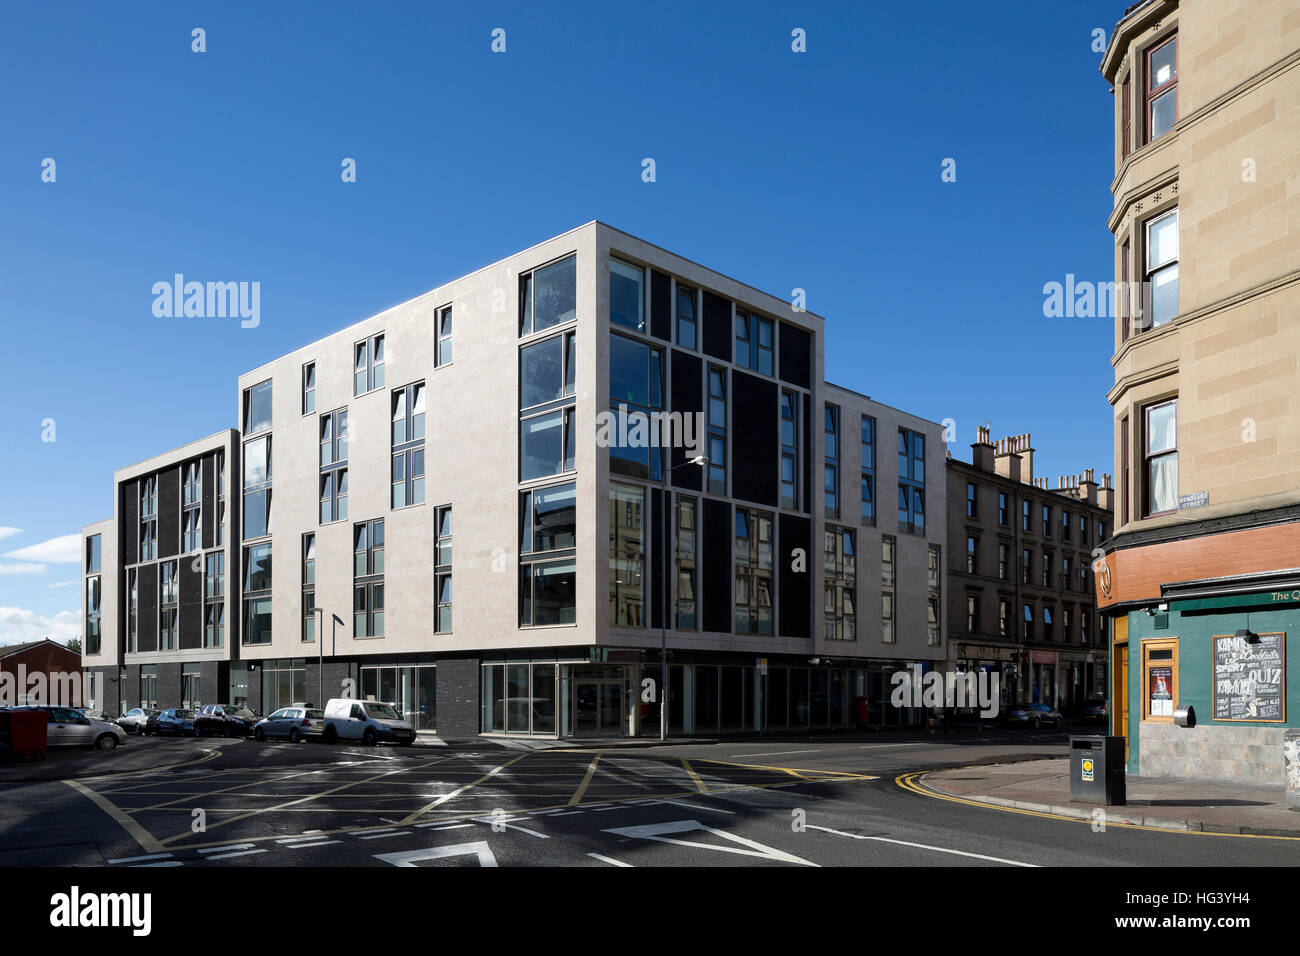 Hyndland House Student Accommodation, Partick, Glasgow, Scotland, UK. Exterior view. Stock Photo